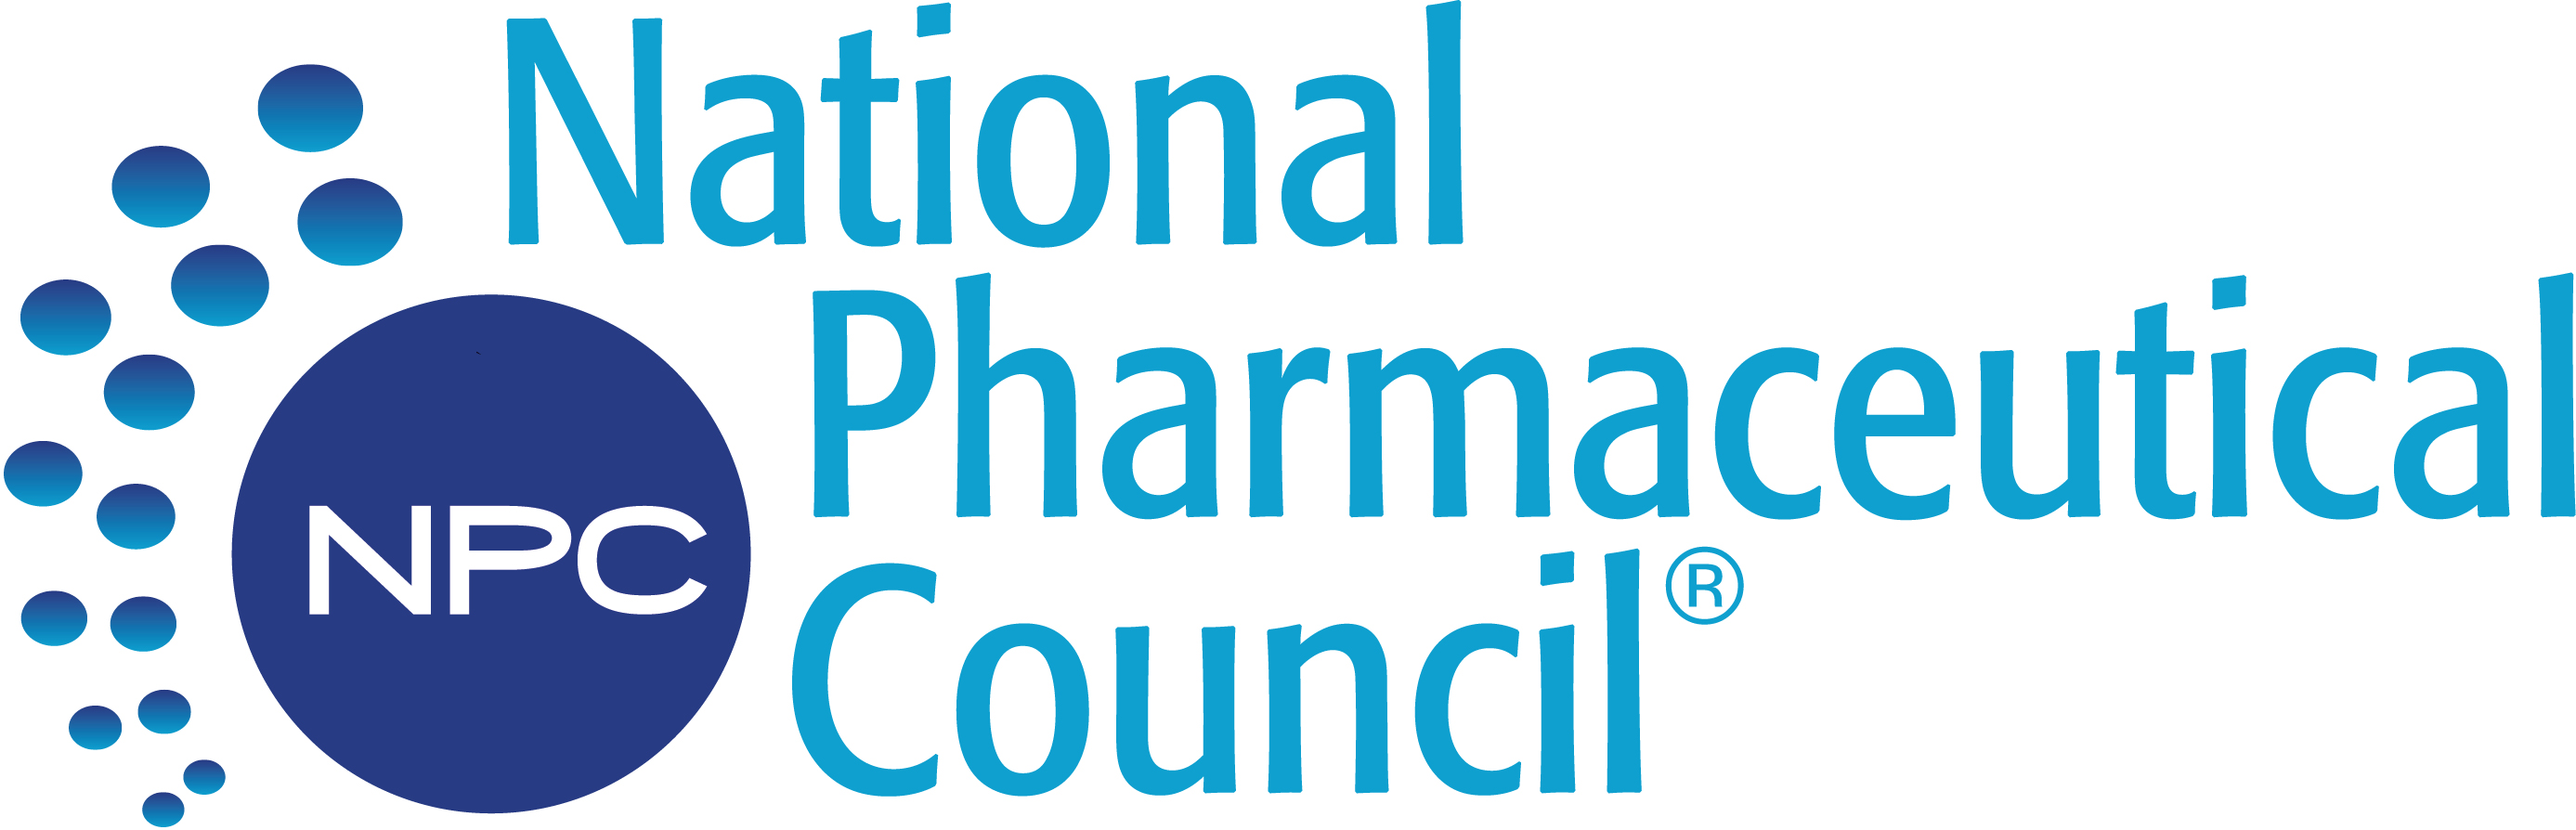 National Pharmaceutical Council